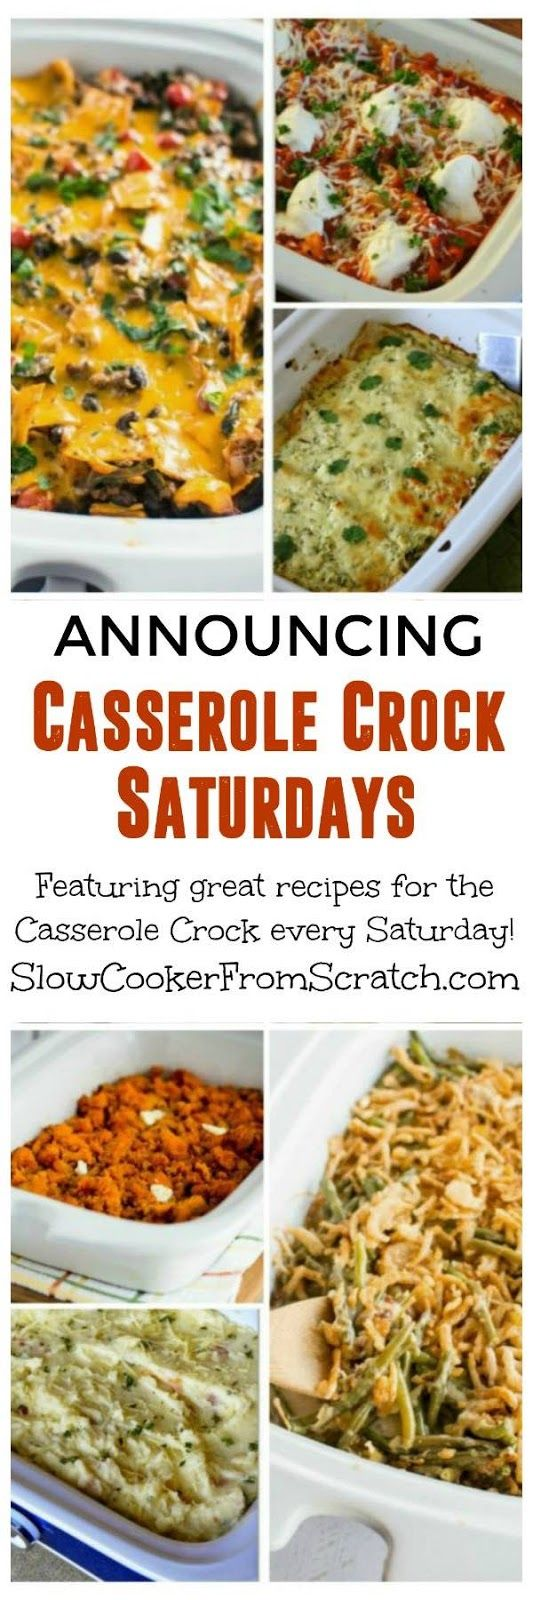 Announcing Casserole Crock Saturdays and Recipes for the New Crock-Pot Casserole Crock Slow Cooker! [found on SlowCookerFromScratch.com]